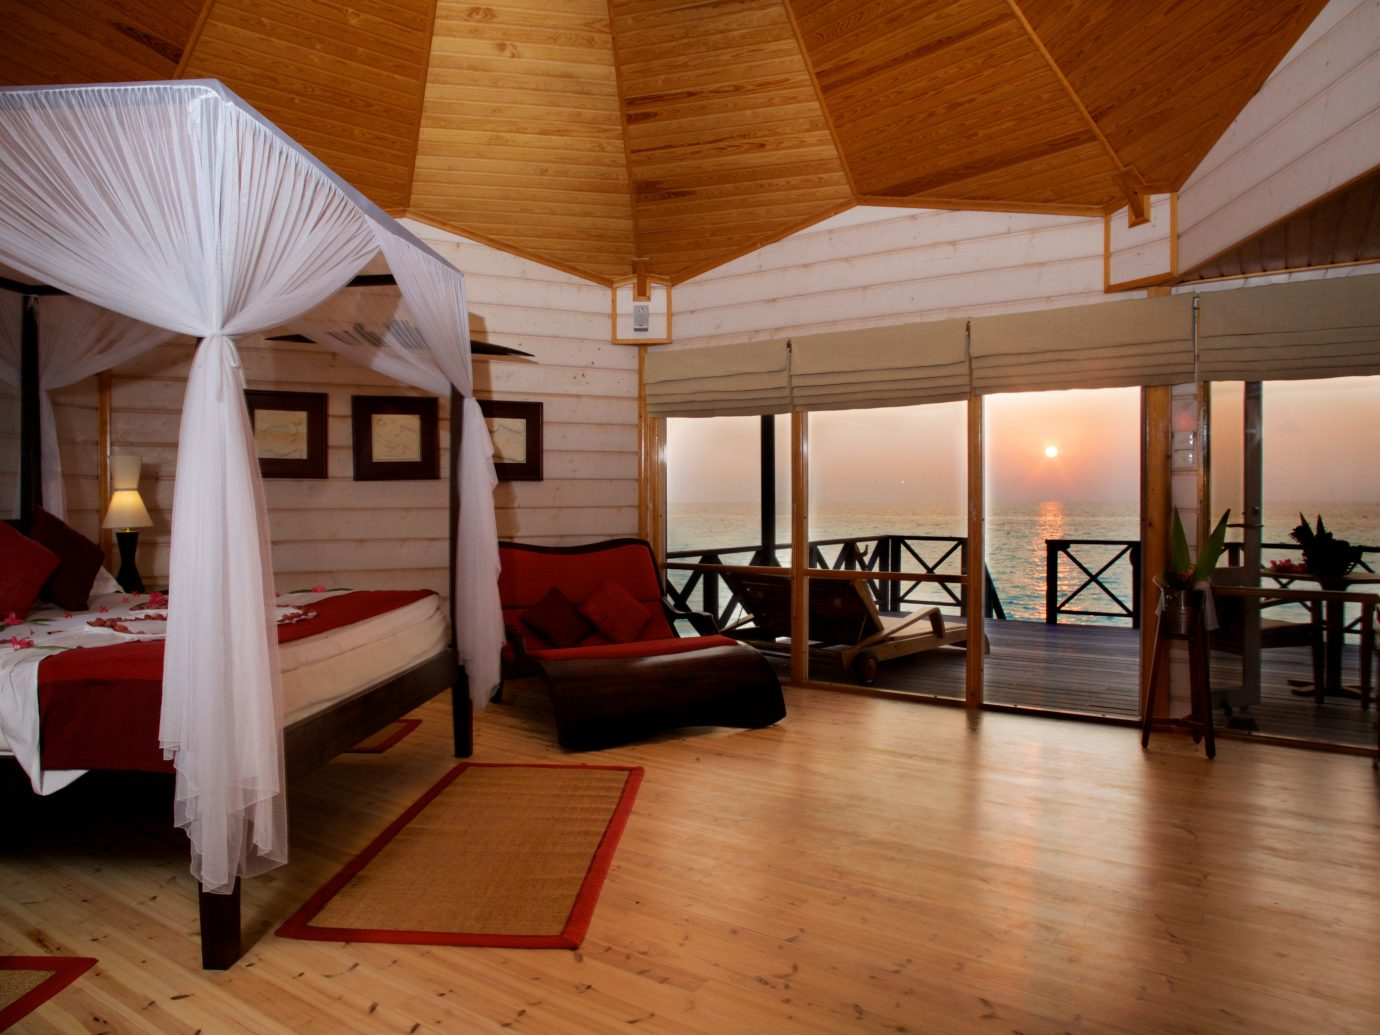 Komandoo Maldives Island Resort Bedroom Overlooking Sunset